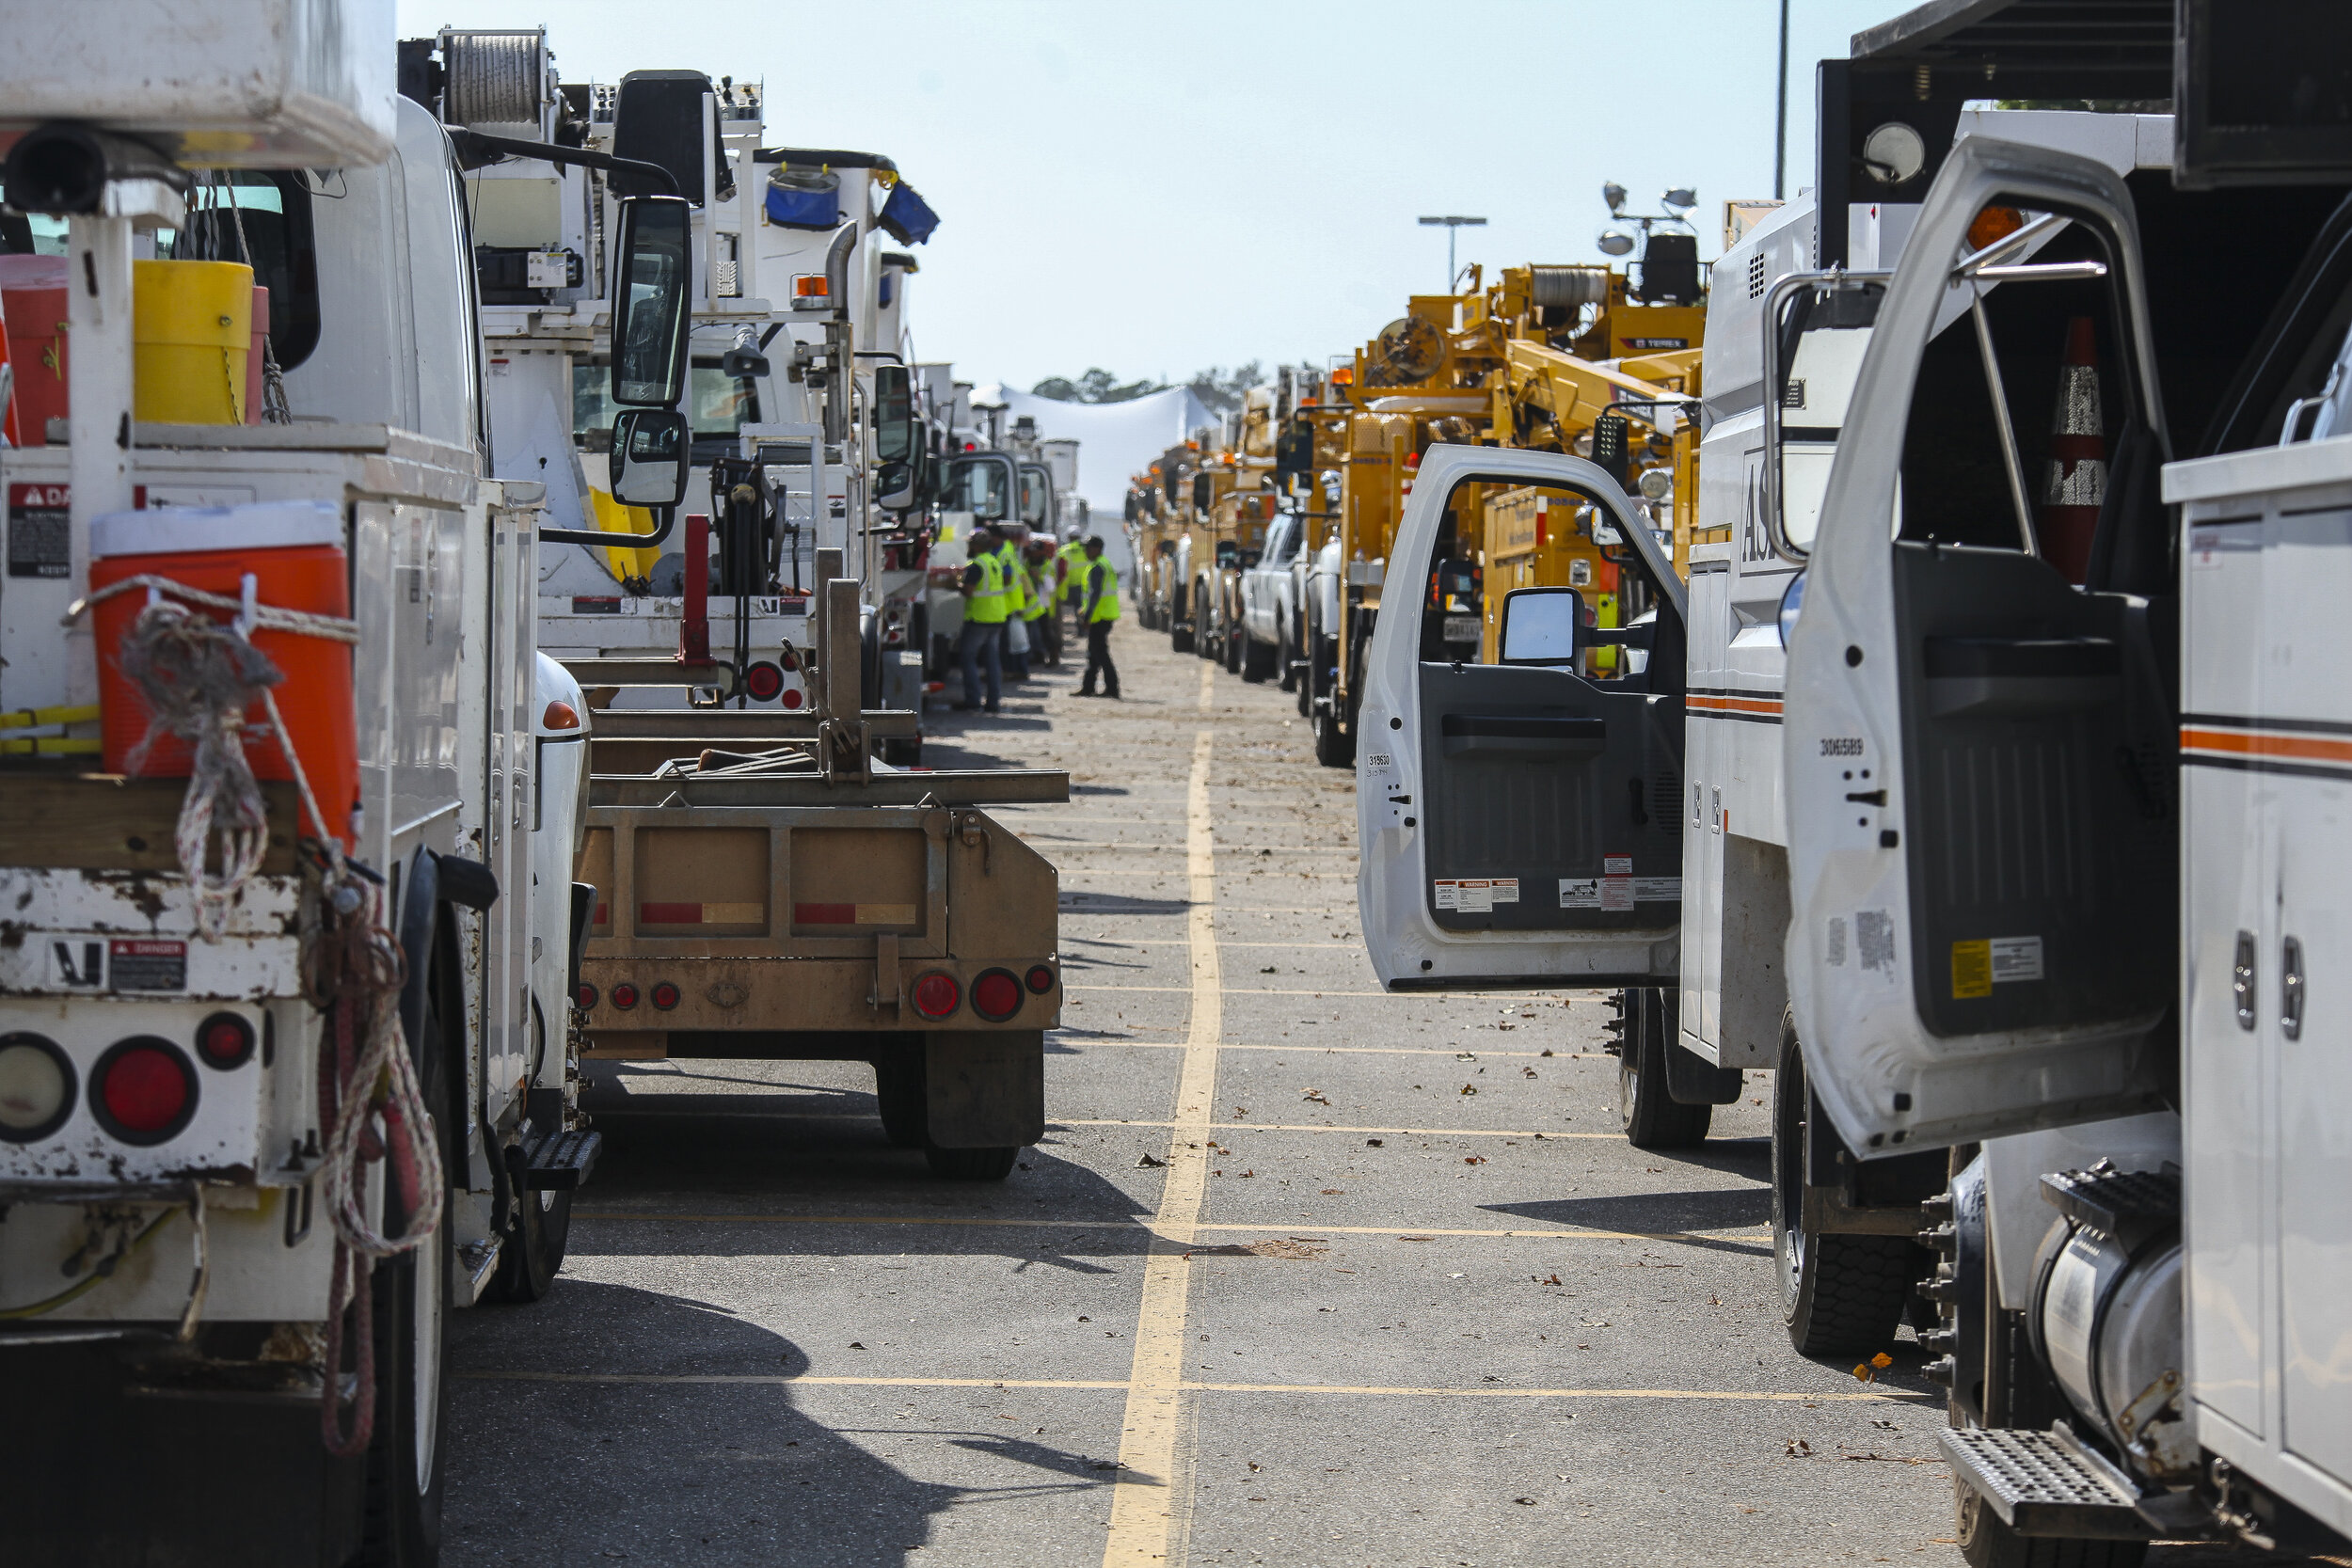 Image credit: FEMA - Utility Trucks and Crews Line up To Help